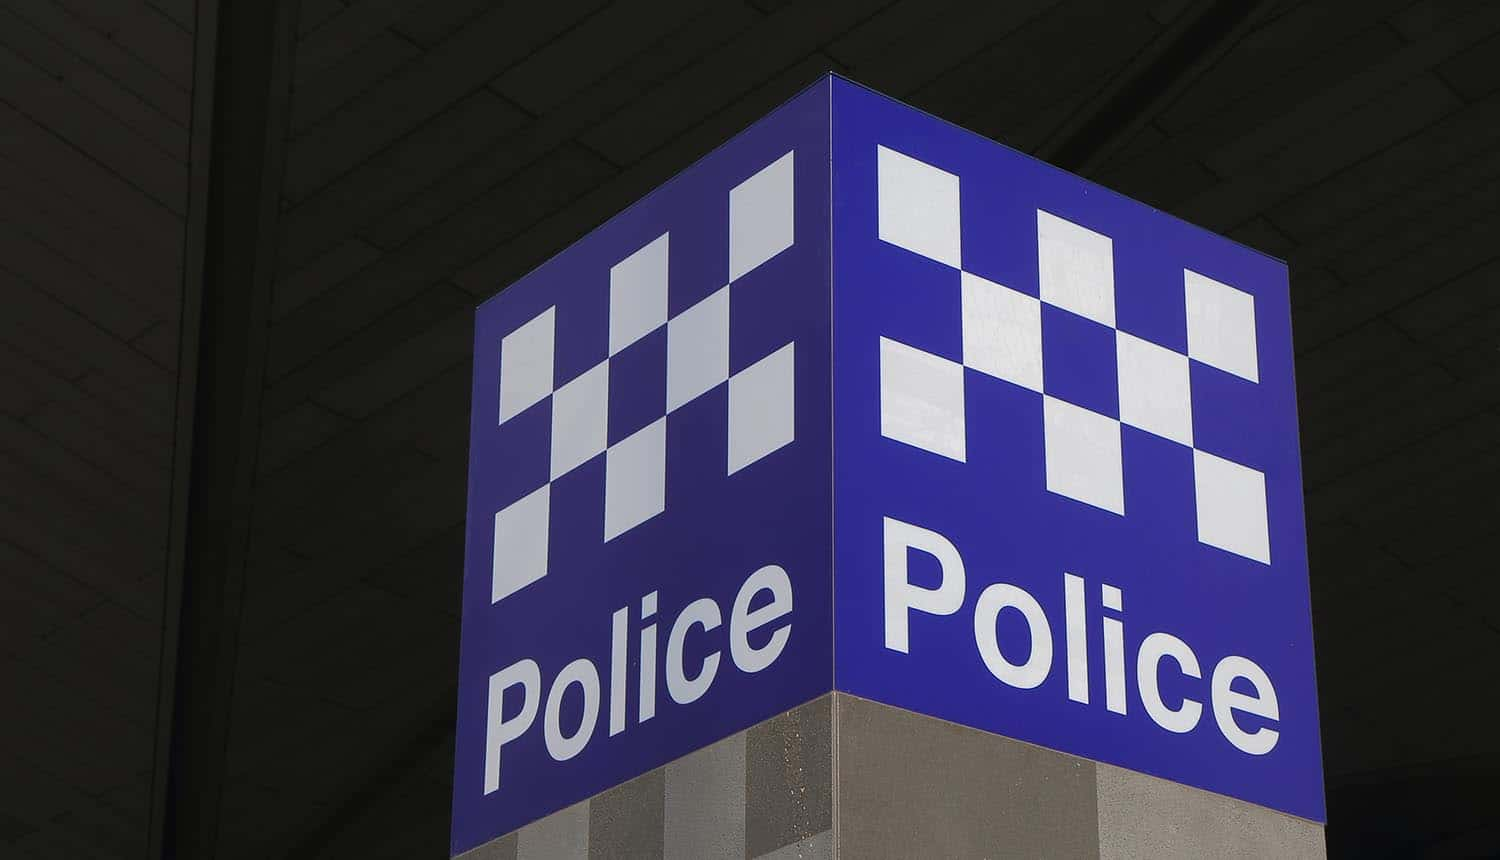 Australian Police. logo outside building showing surveillance bill targeted at cybercriminals